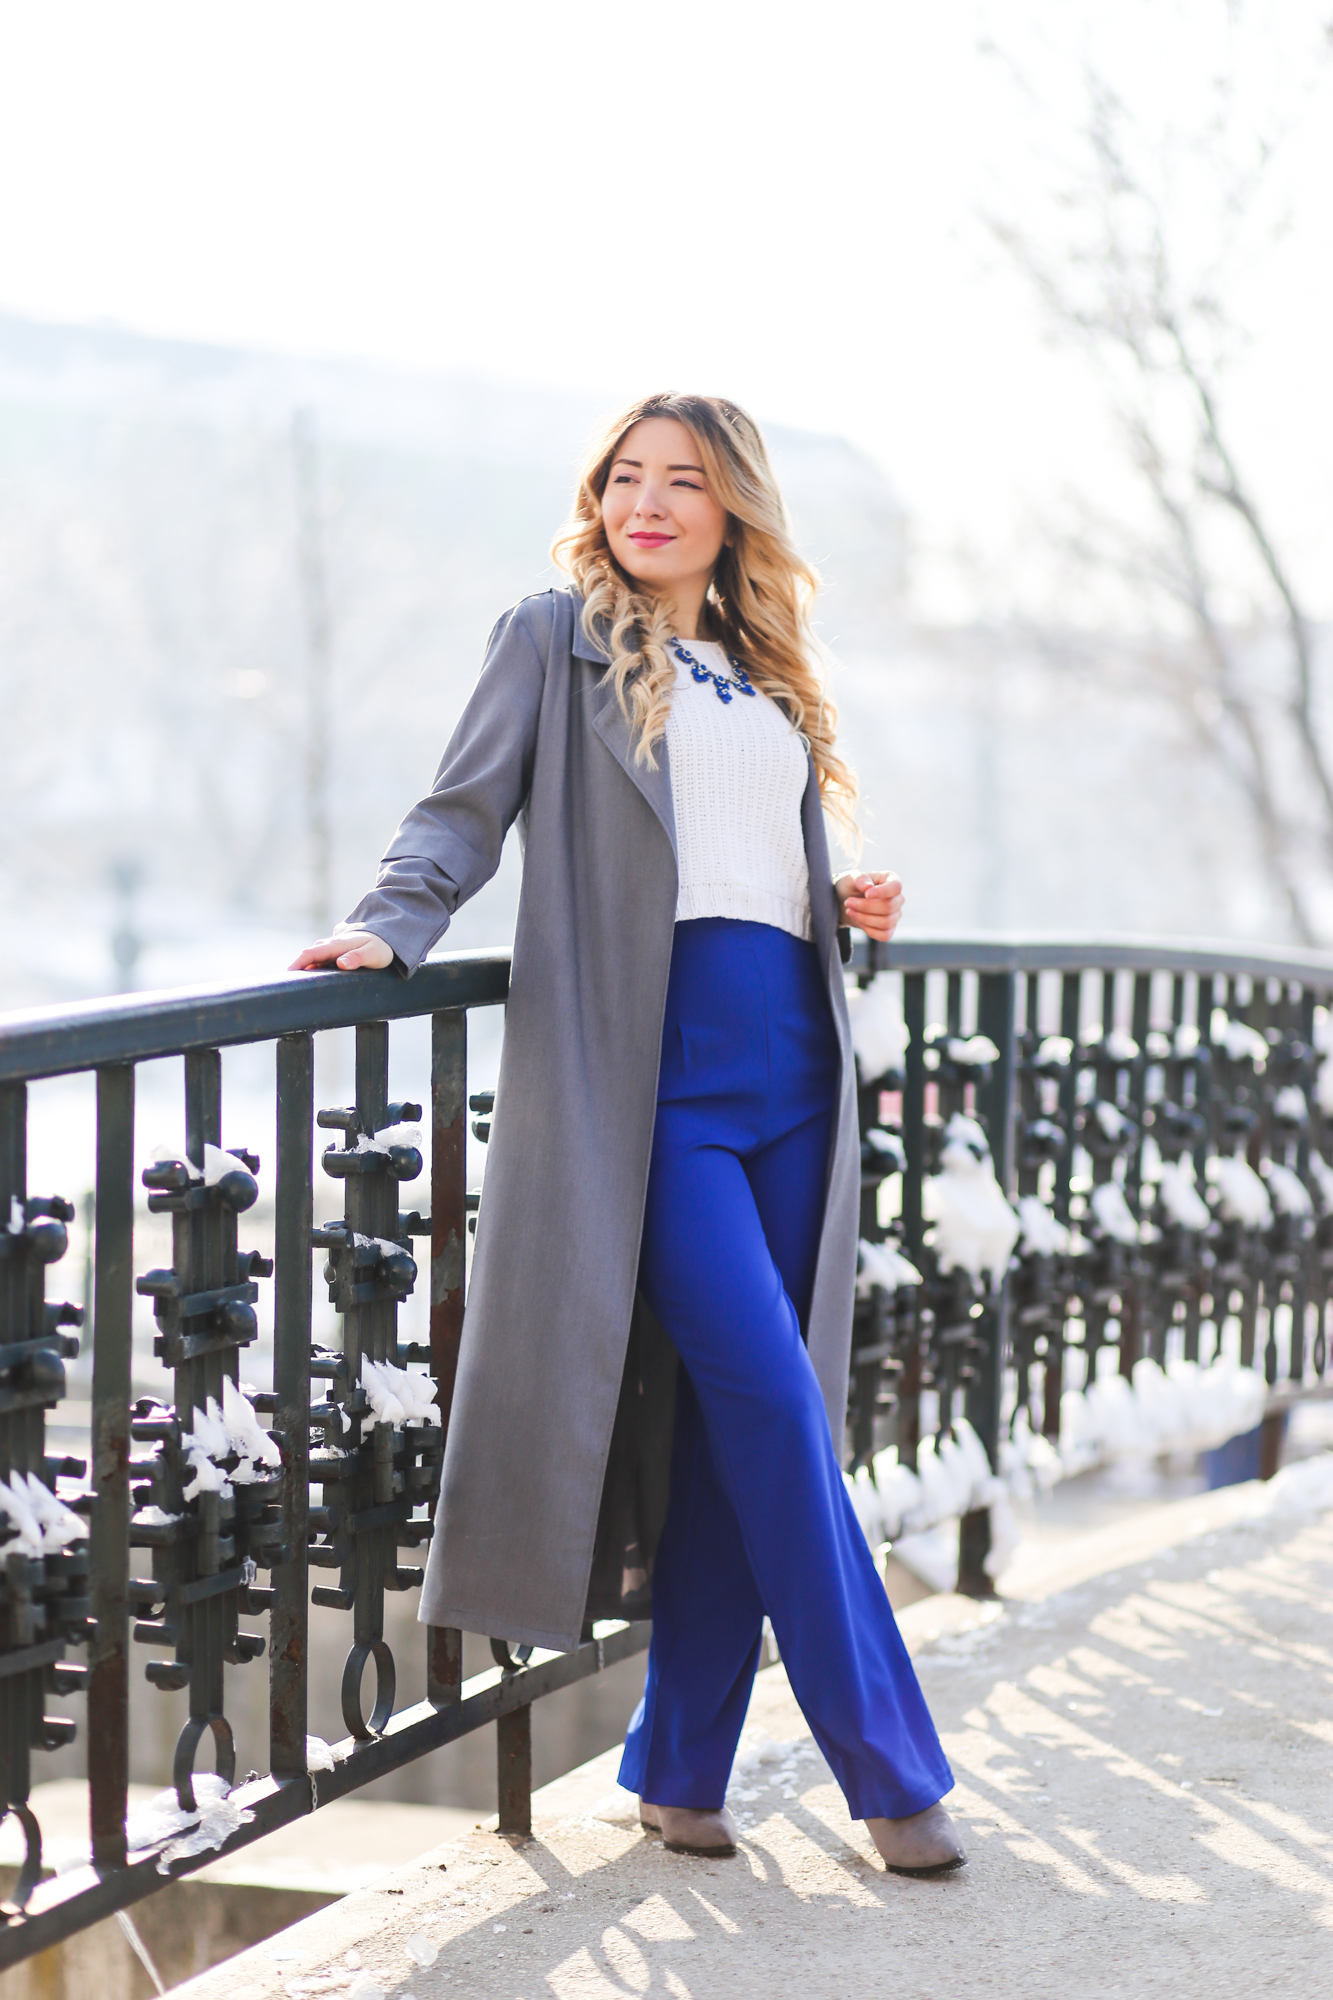 Street style: royal blue high waisted pants, white crop top sweater, grey long coat, grey boots, fashion blogger Andreea Ristea